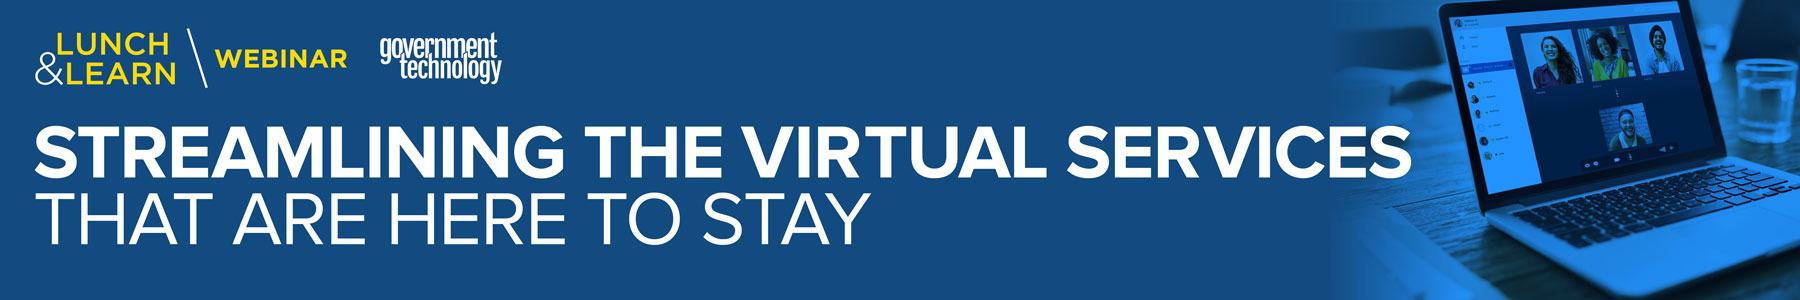 Streamlining the Virtual Services That Are Here to Stay